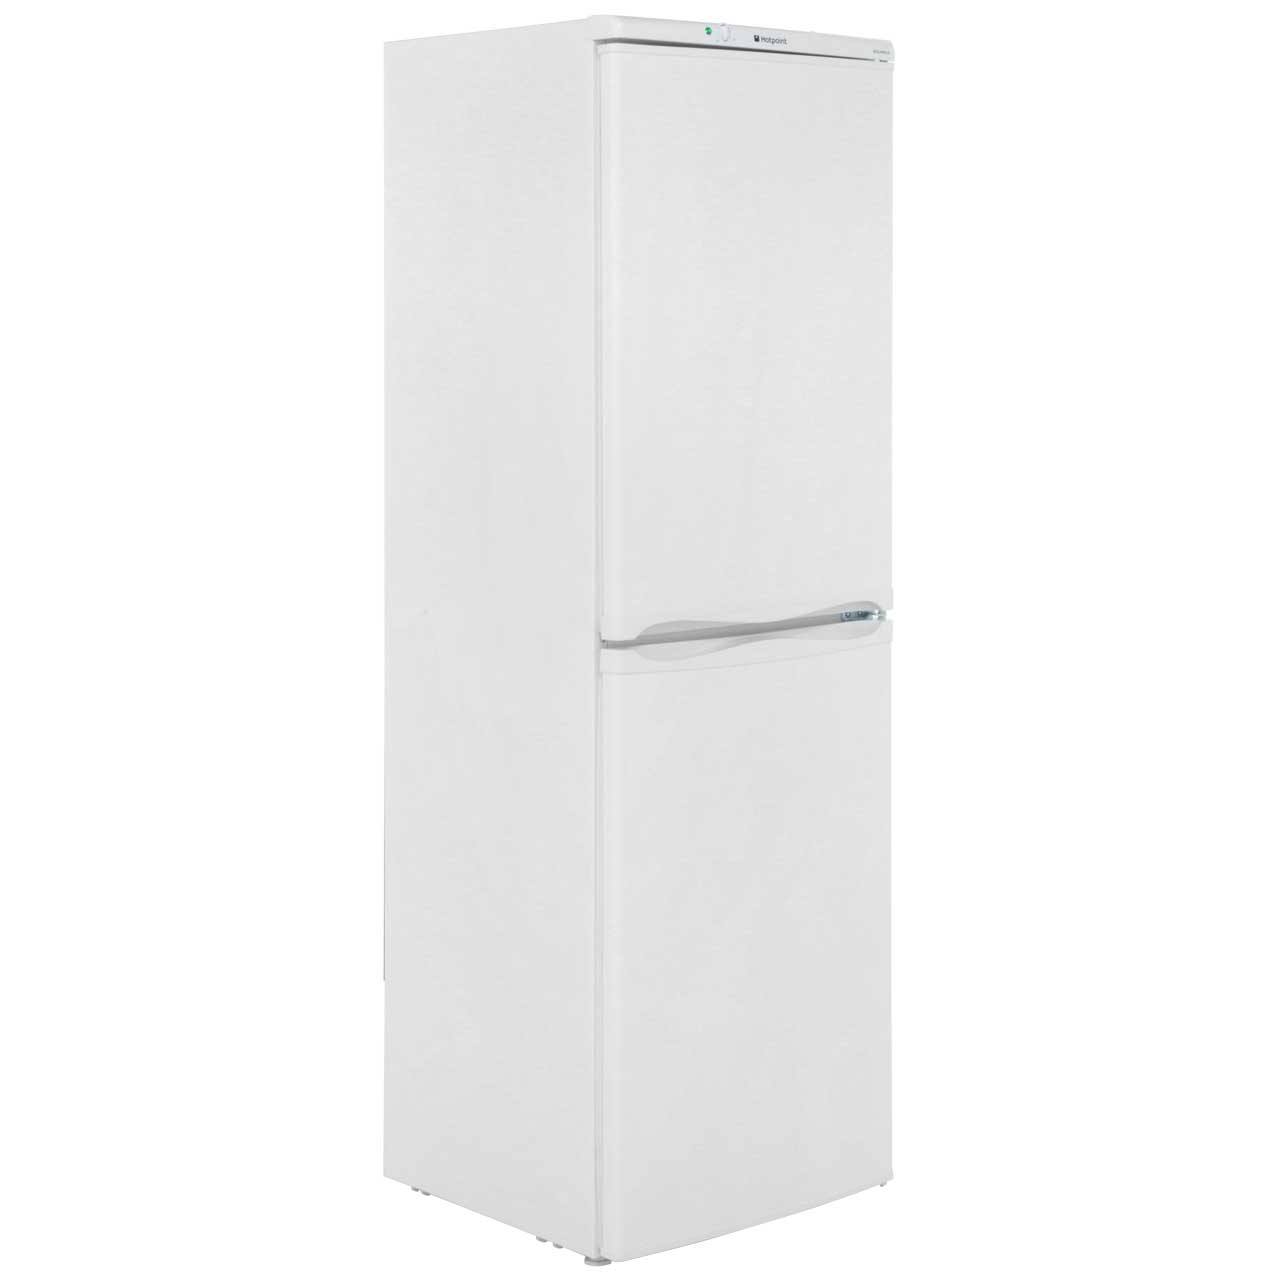 Hotpoint Aquarius FFAA52P 50/50 Frost Free Fridge Freezer - White